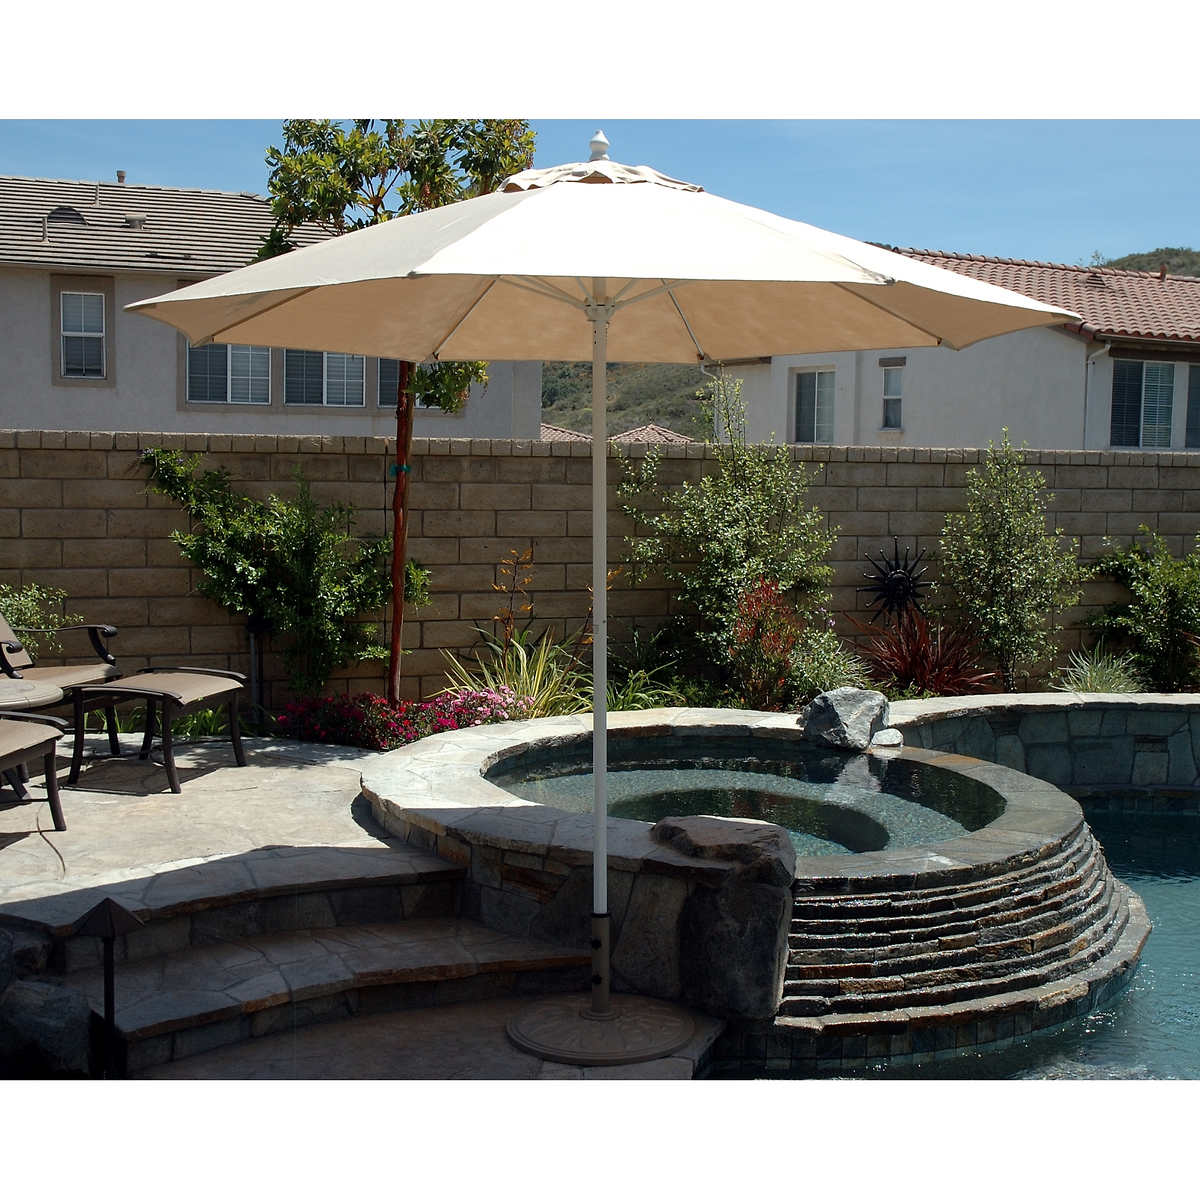 Tropishade Commercial Patio Umbrella. Item #304287. Click to Zoom - 9 Ft. Tropishade Commercial Patio Umbrella